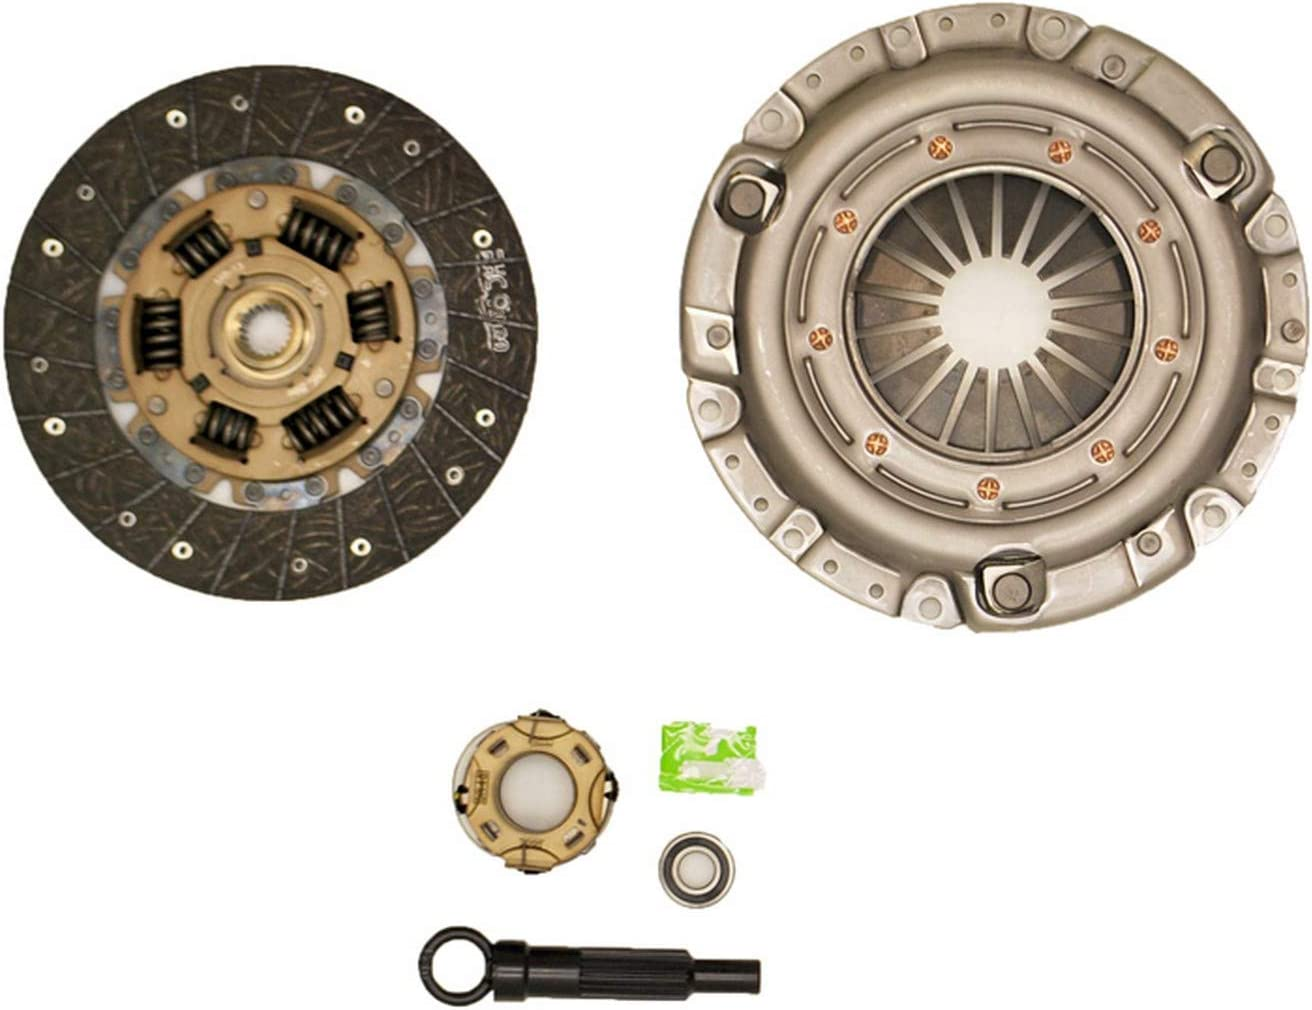 EFT STAGE 4 CLUTCH KIT WORKS WITH 1996-2005 MITSUBISHI ECLIPSE GS RS 2.4L 4G64 COUPE SPYDER